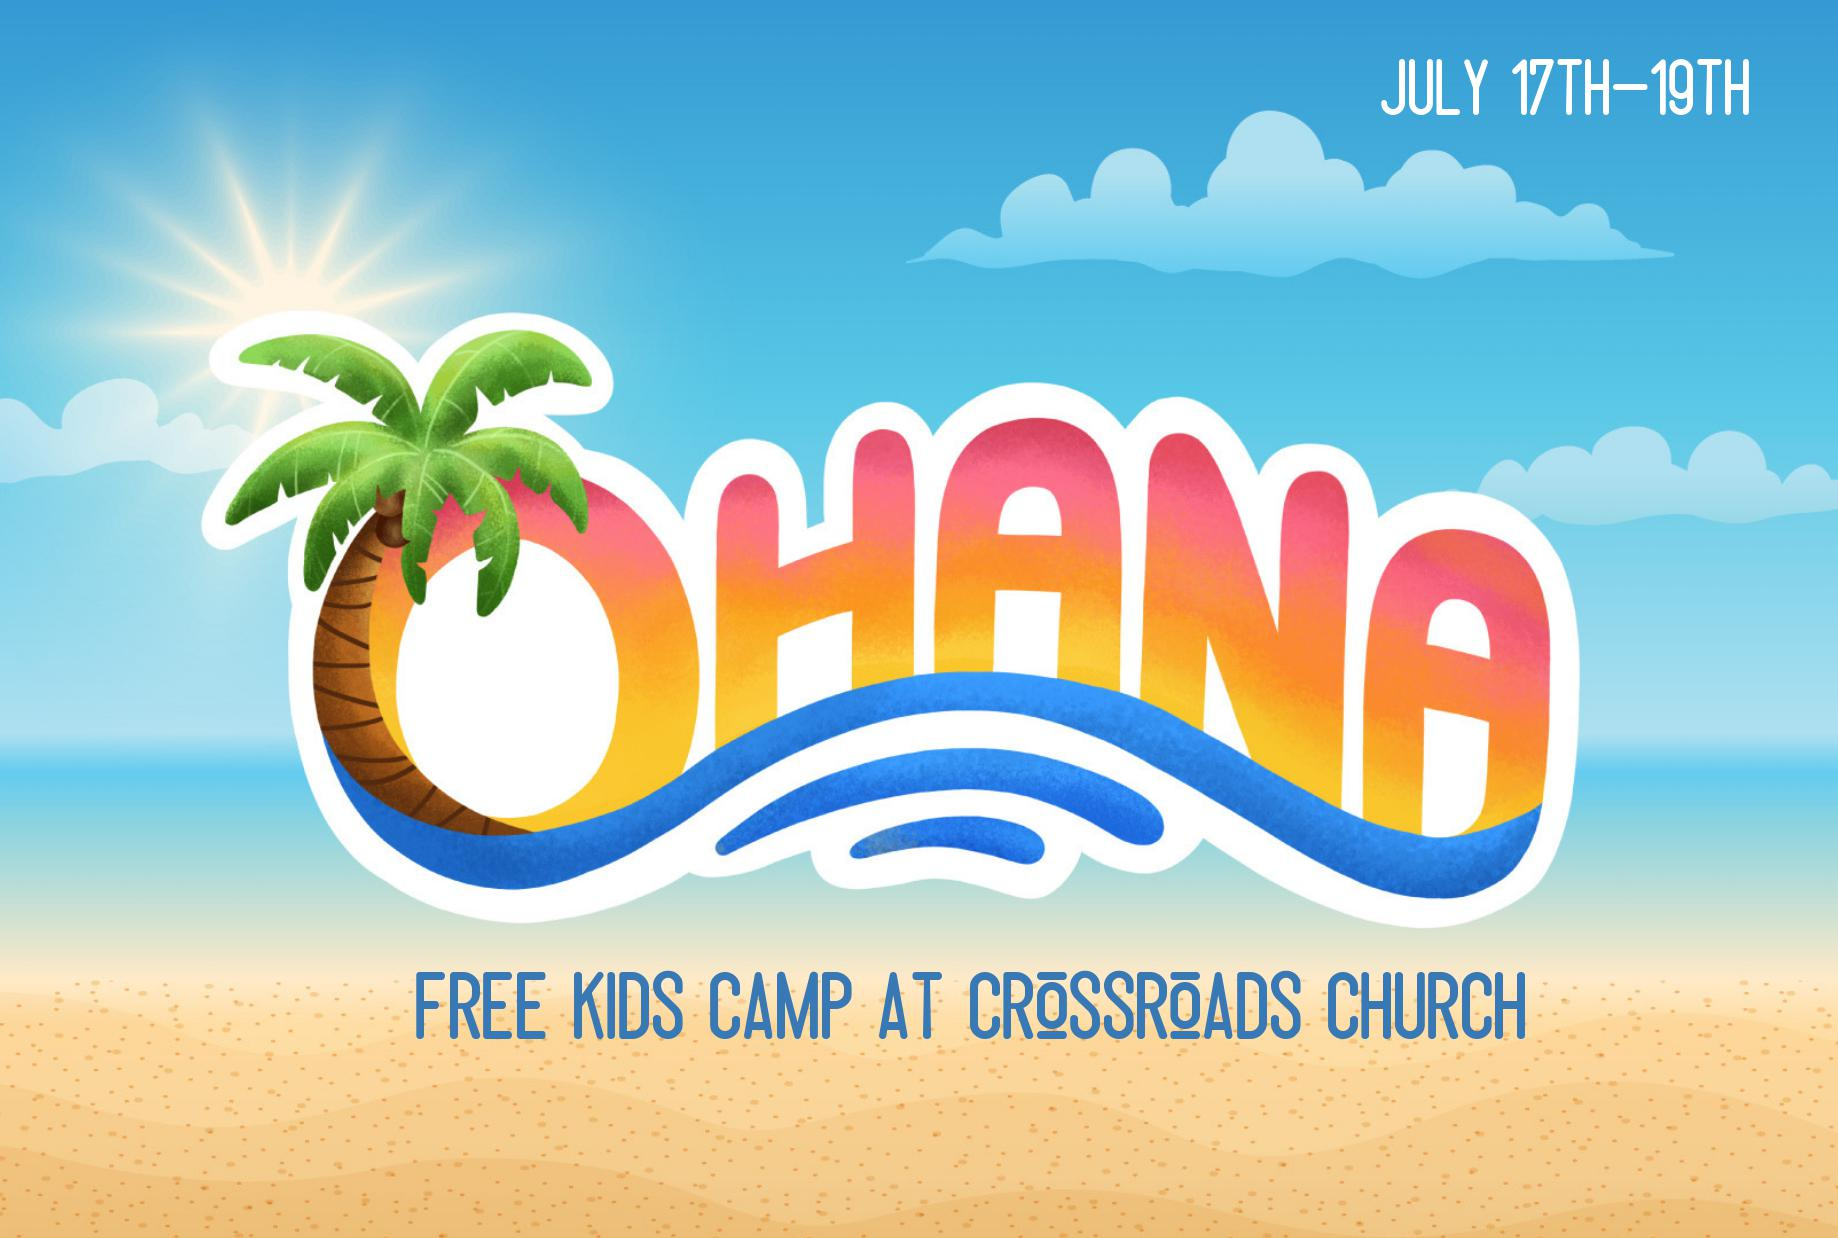 Ohana Summer Camp (July 17th-19th) - On JULY 17TH-19TH, we will be hosting an Island themed summer camp, and believe us when we tell you, your kids will not want to miss this! It will be three full days of FREE summertime fun! This day camp is designed for kids ages 3-12.